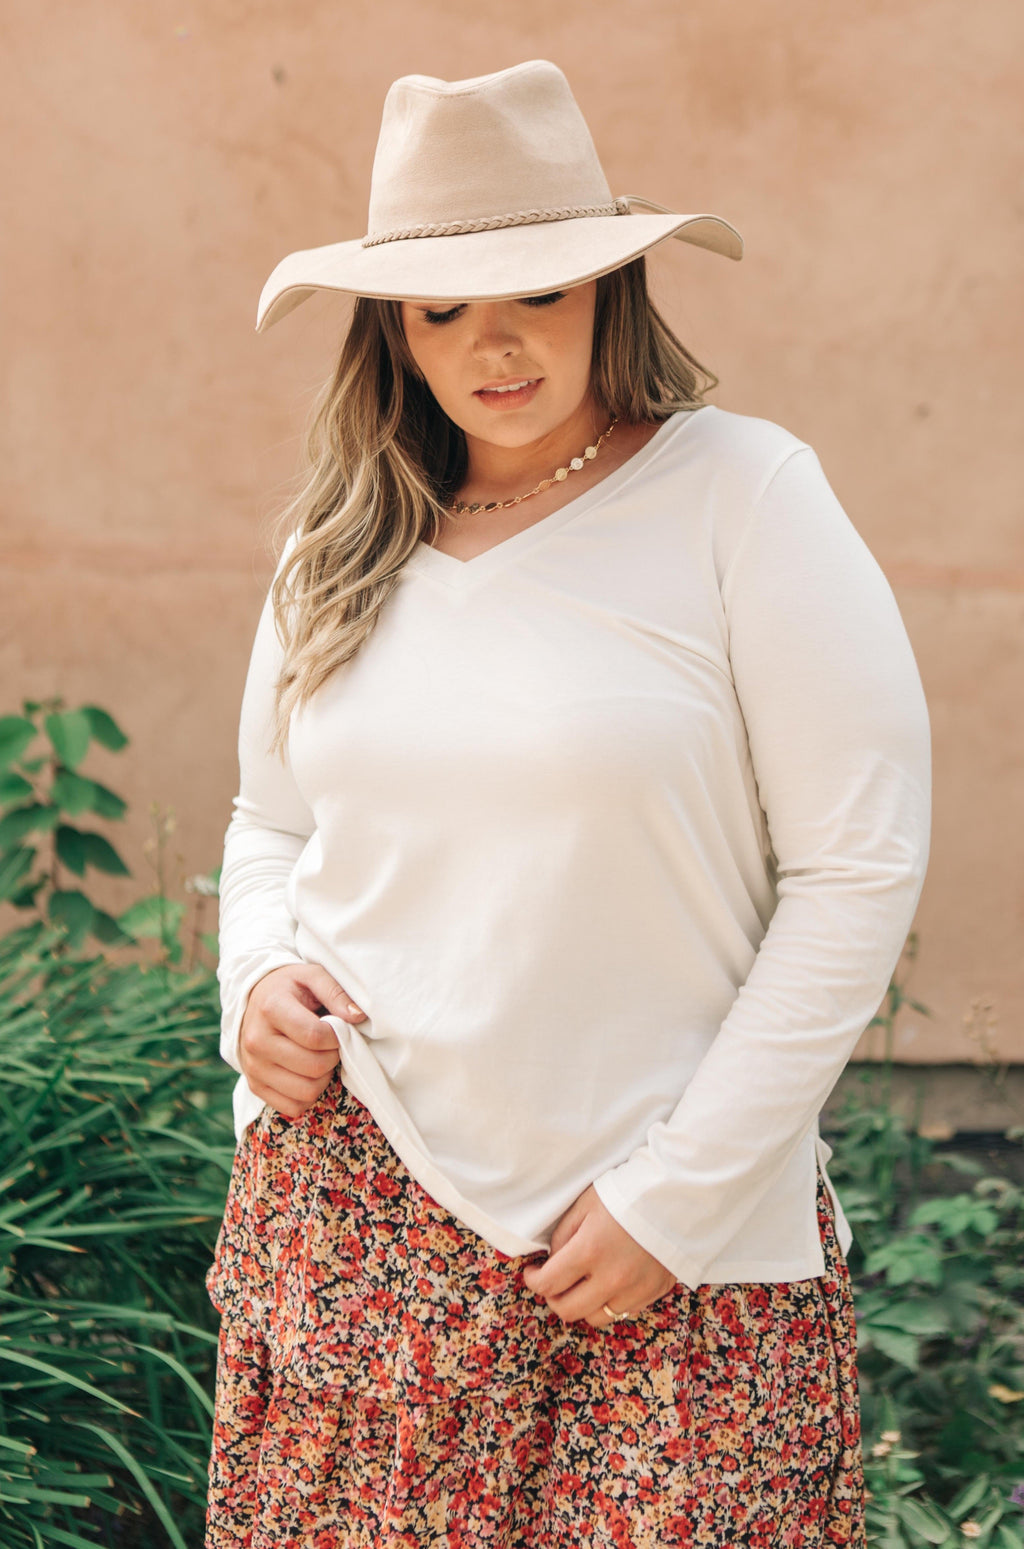 Tiffany Top in Pearl-10-16-2020, 10-8-2020, 1XL, 2XL, 3XL, BFCM2020, Bonus, Group A, Group B, Group C, Group D, Group S, Large, Medium, Plus, Small, Tops, XL, XS-Womens Artisan USA American Made Clothing Accessories